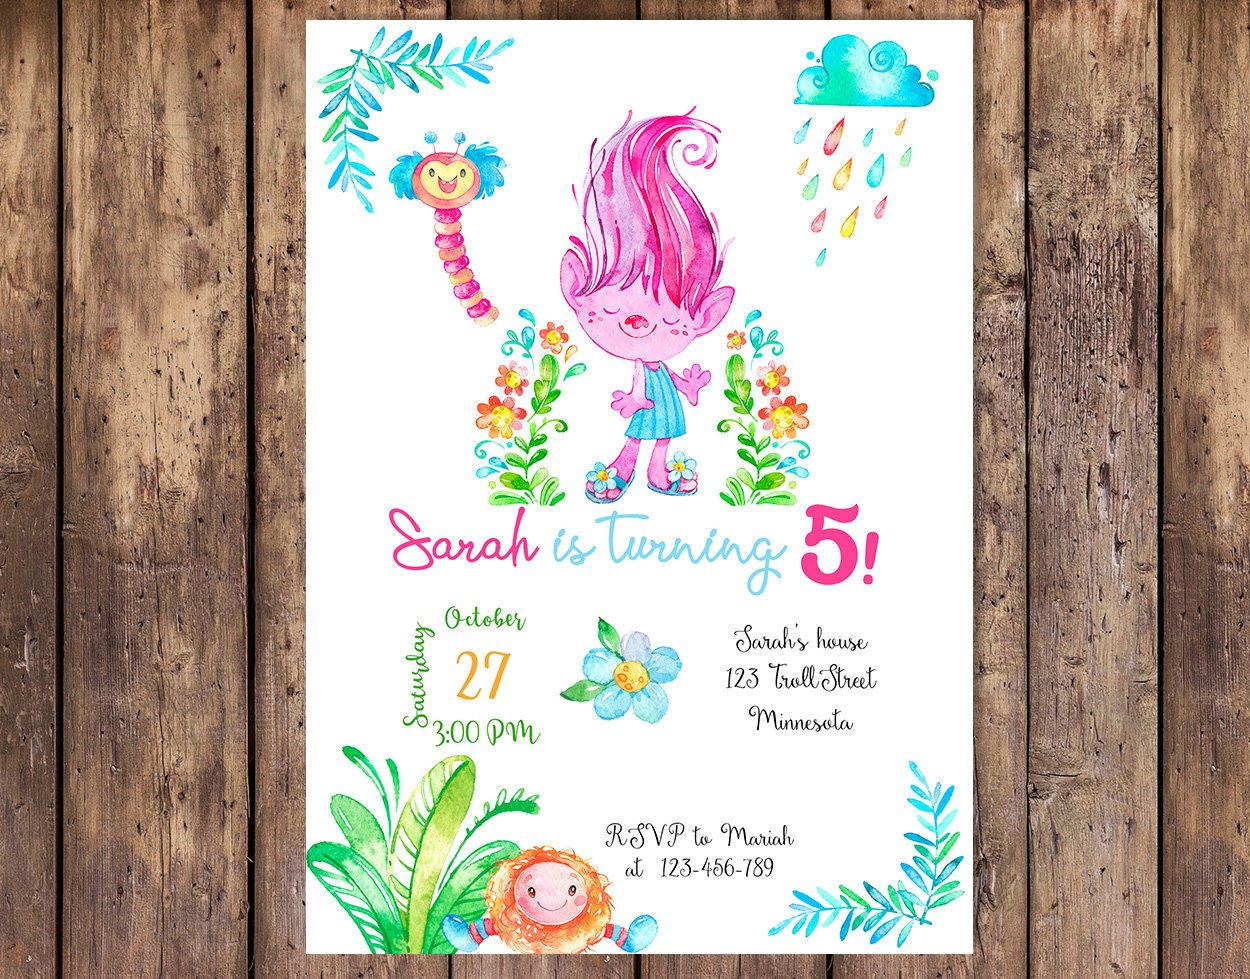 c72fefbd112d These watercolor Trolls party invitations from Paulaparalua are so pretty!  It comes in a cute blue version